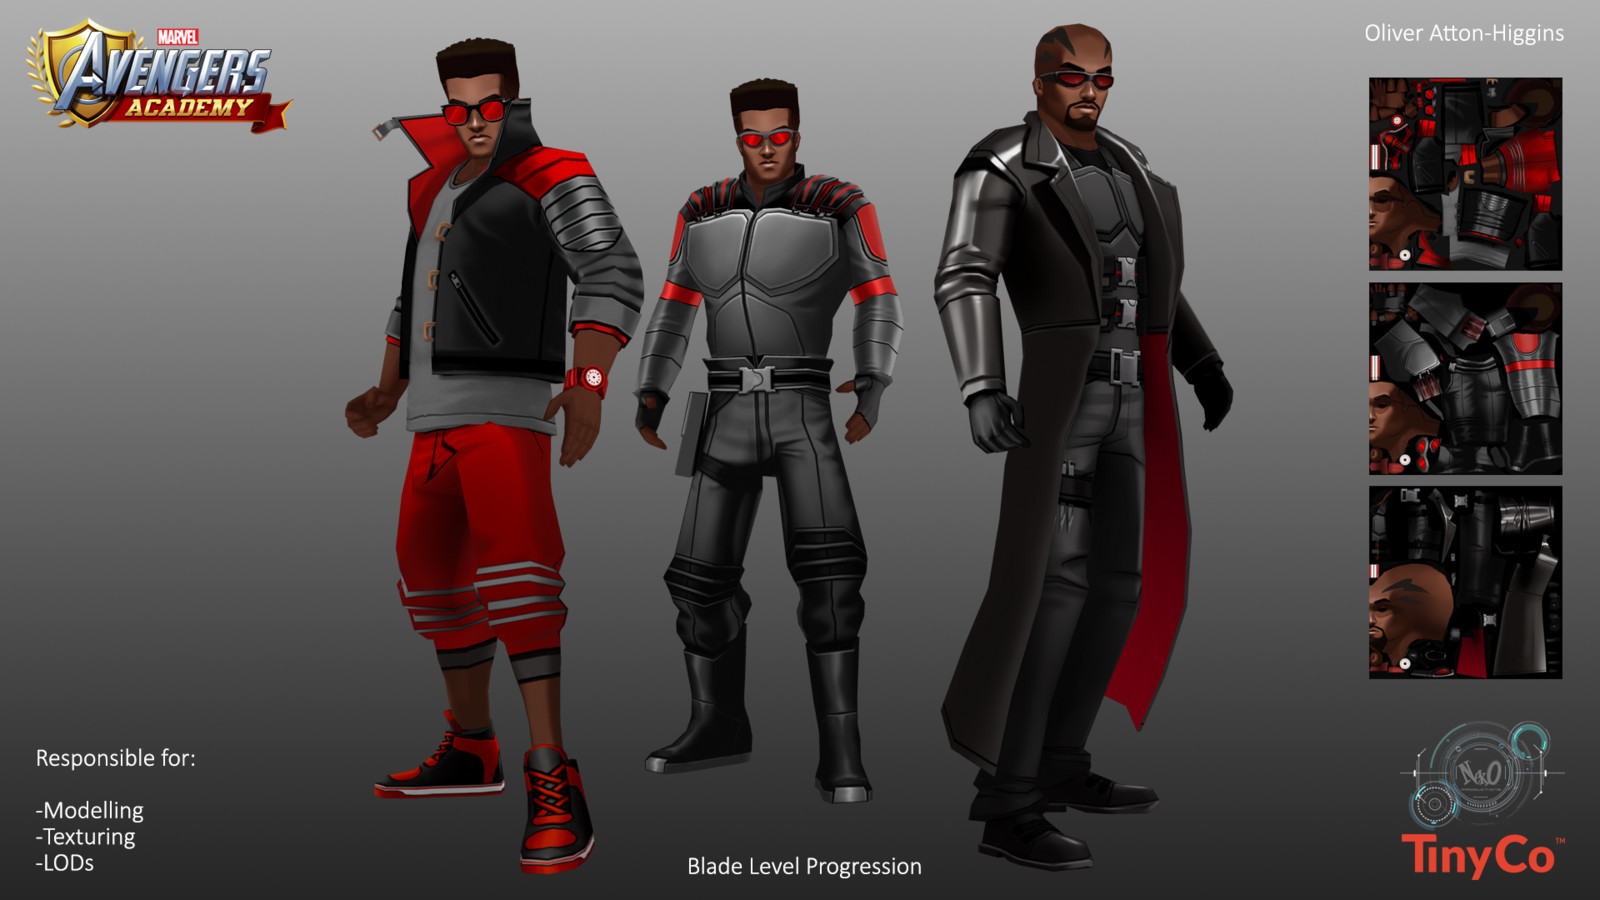 -Modelling